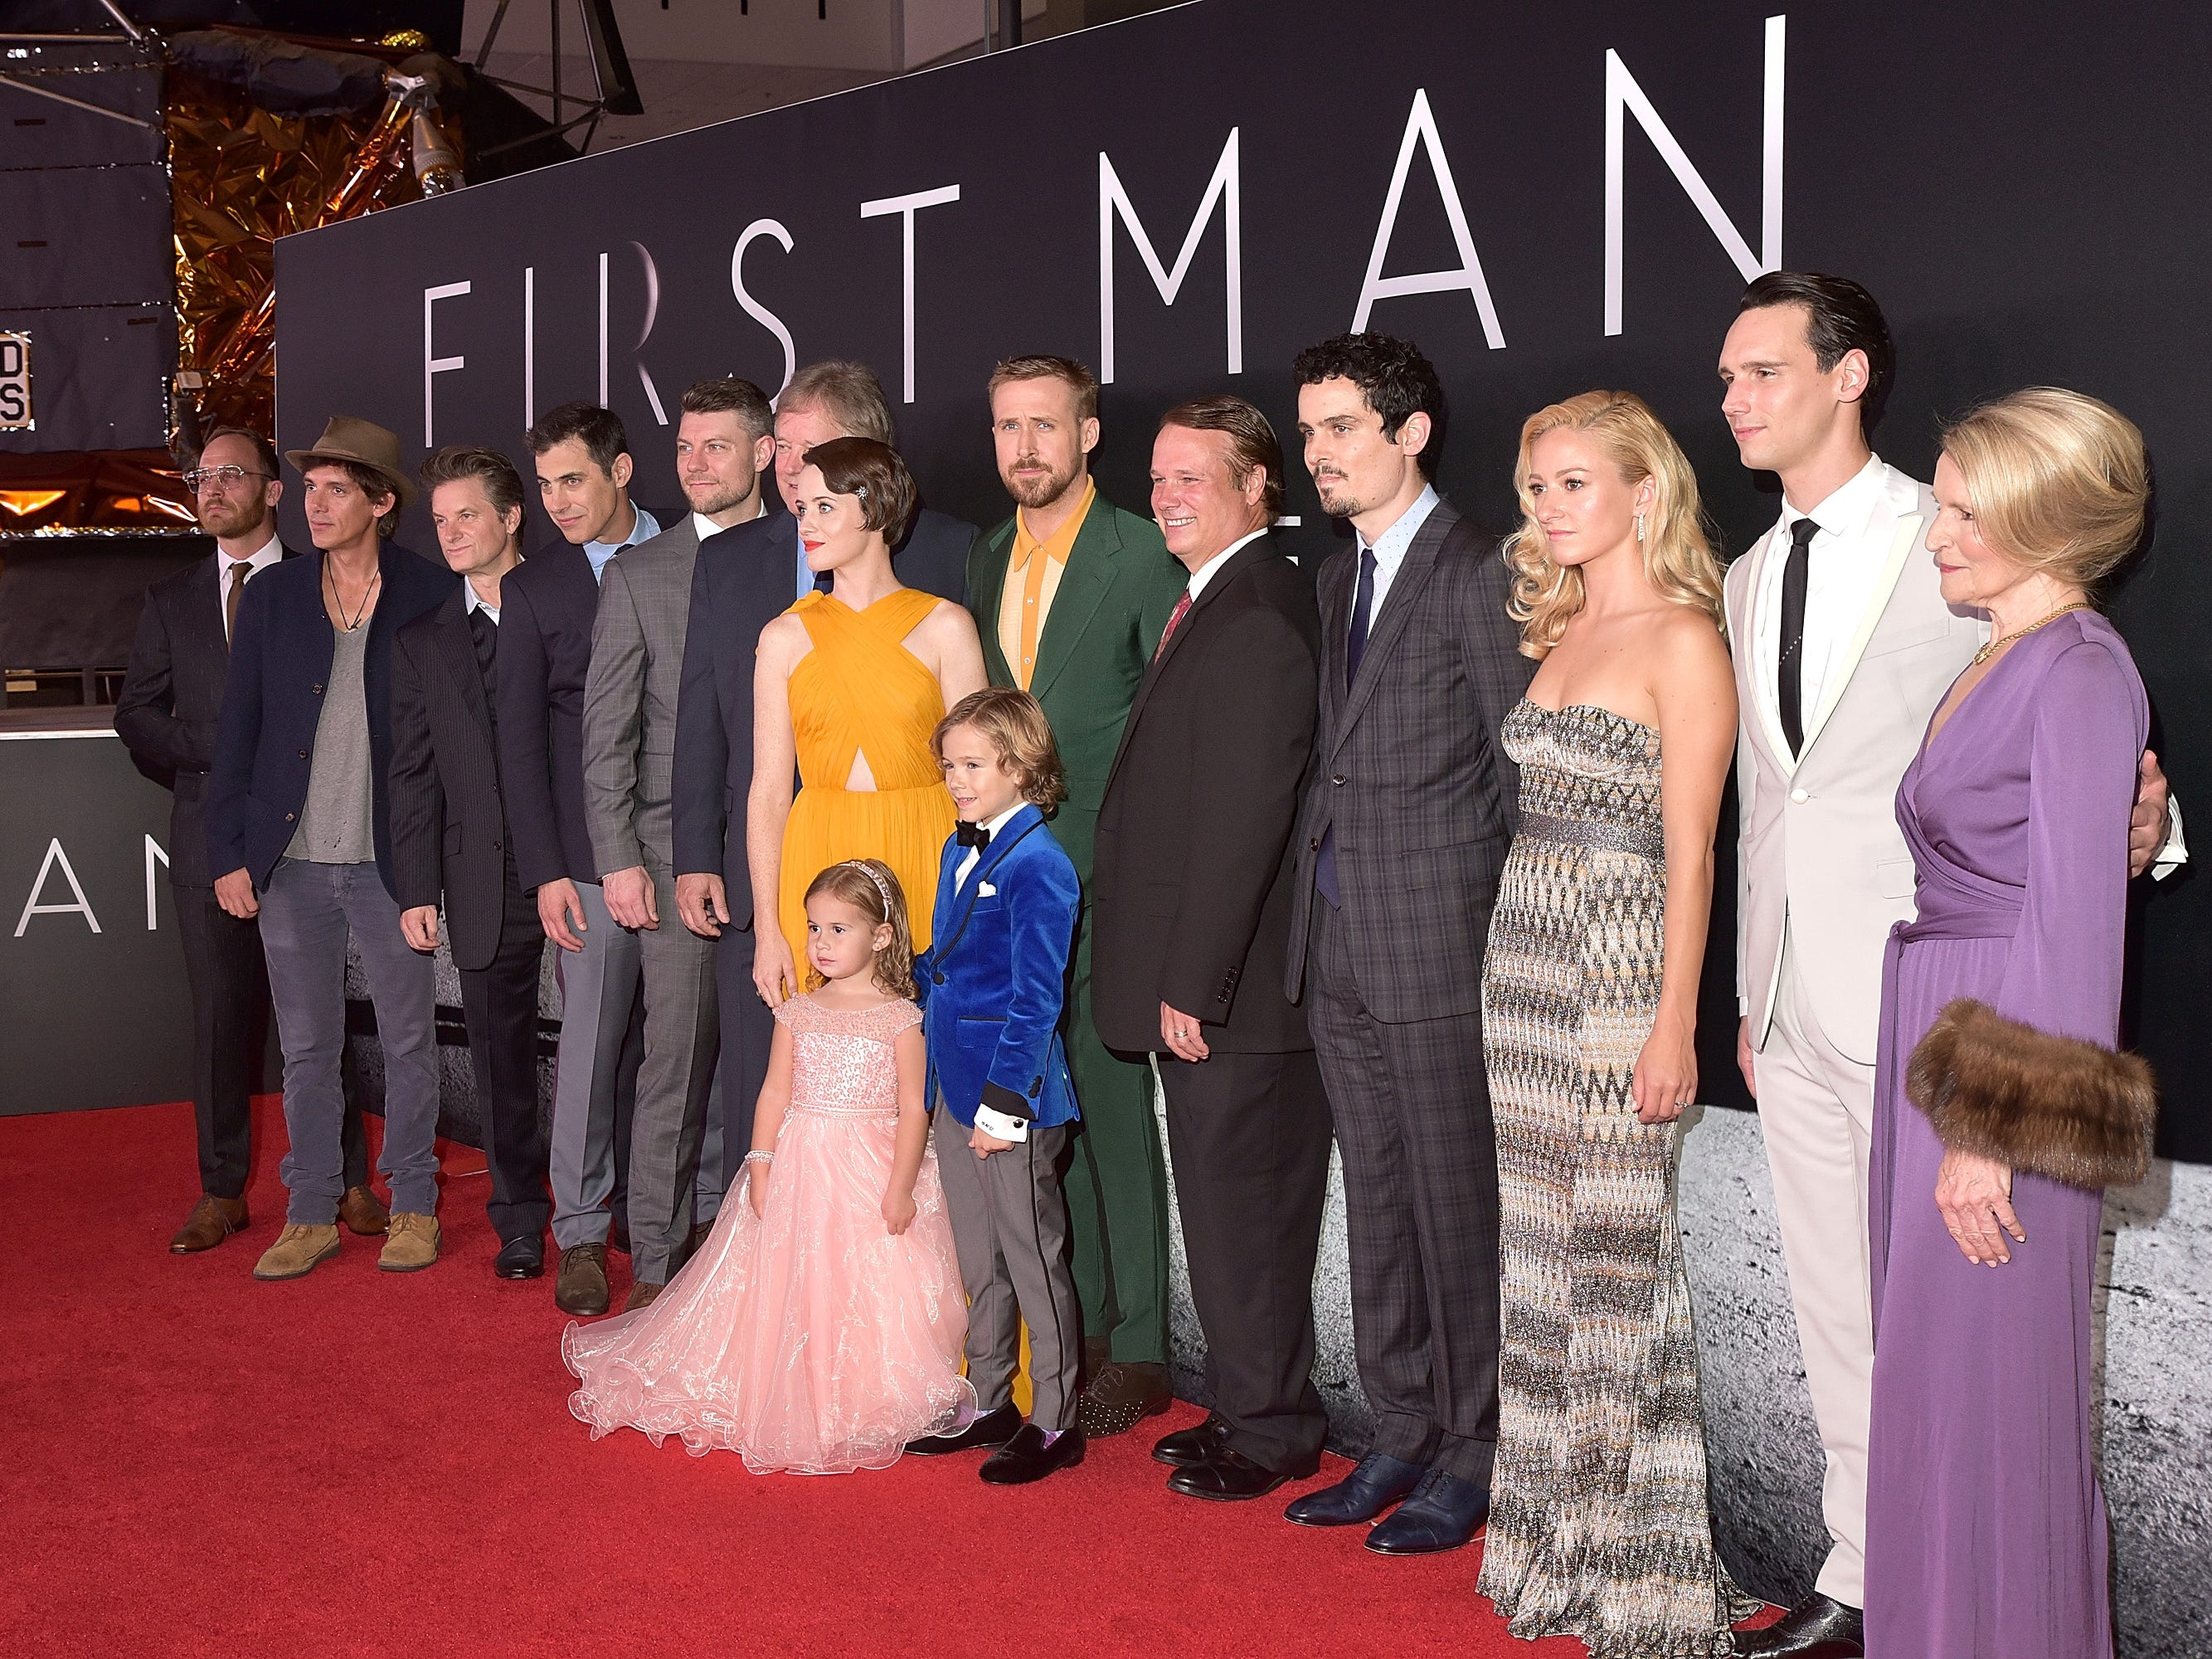 """WASHINGTON, DC - OCTOBER 04:  The cast attends the """"First Man"""" premiere at the National Air and Space Museum on October 4, 2018 in Washington, DC.  (Photo by Shannon Finney/Getty Images) ORG XMIT: 775234726 ORIG FILE ID: 1045748468"""